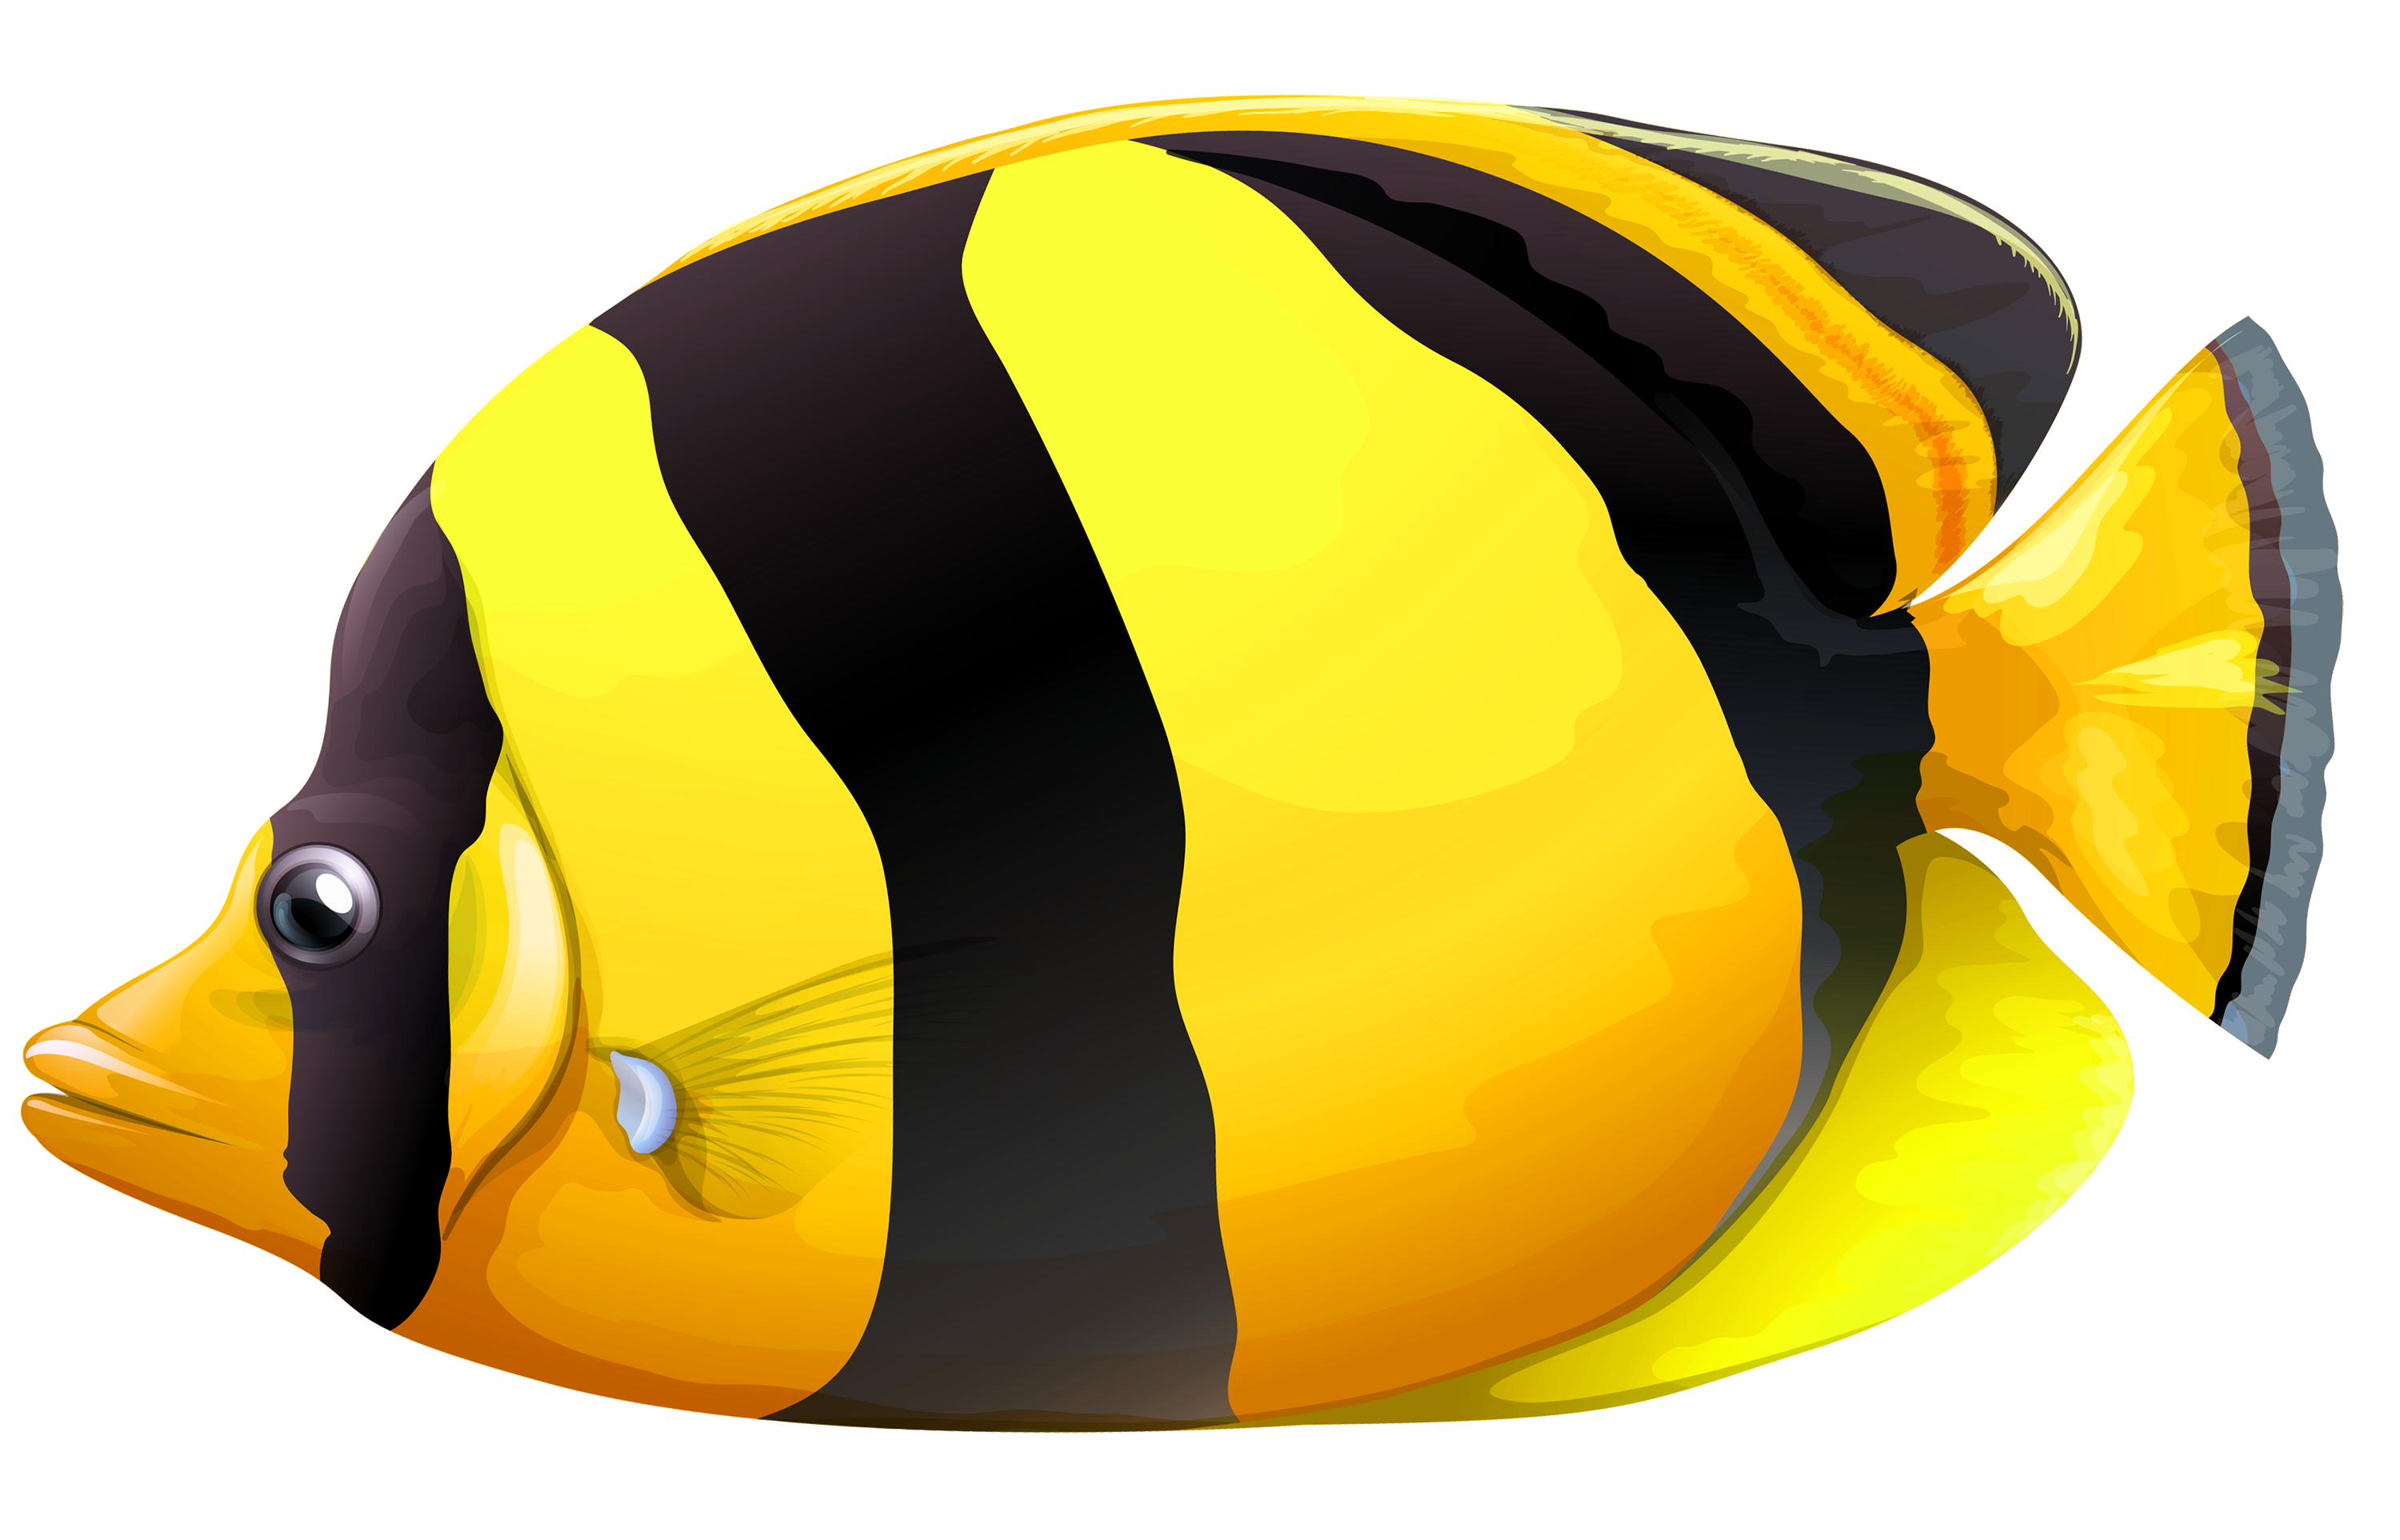 Butterflyfish clipart #3, Download drawings